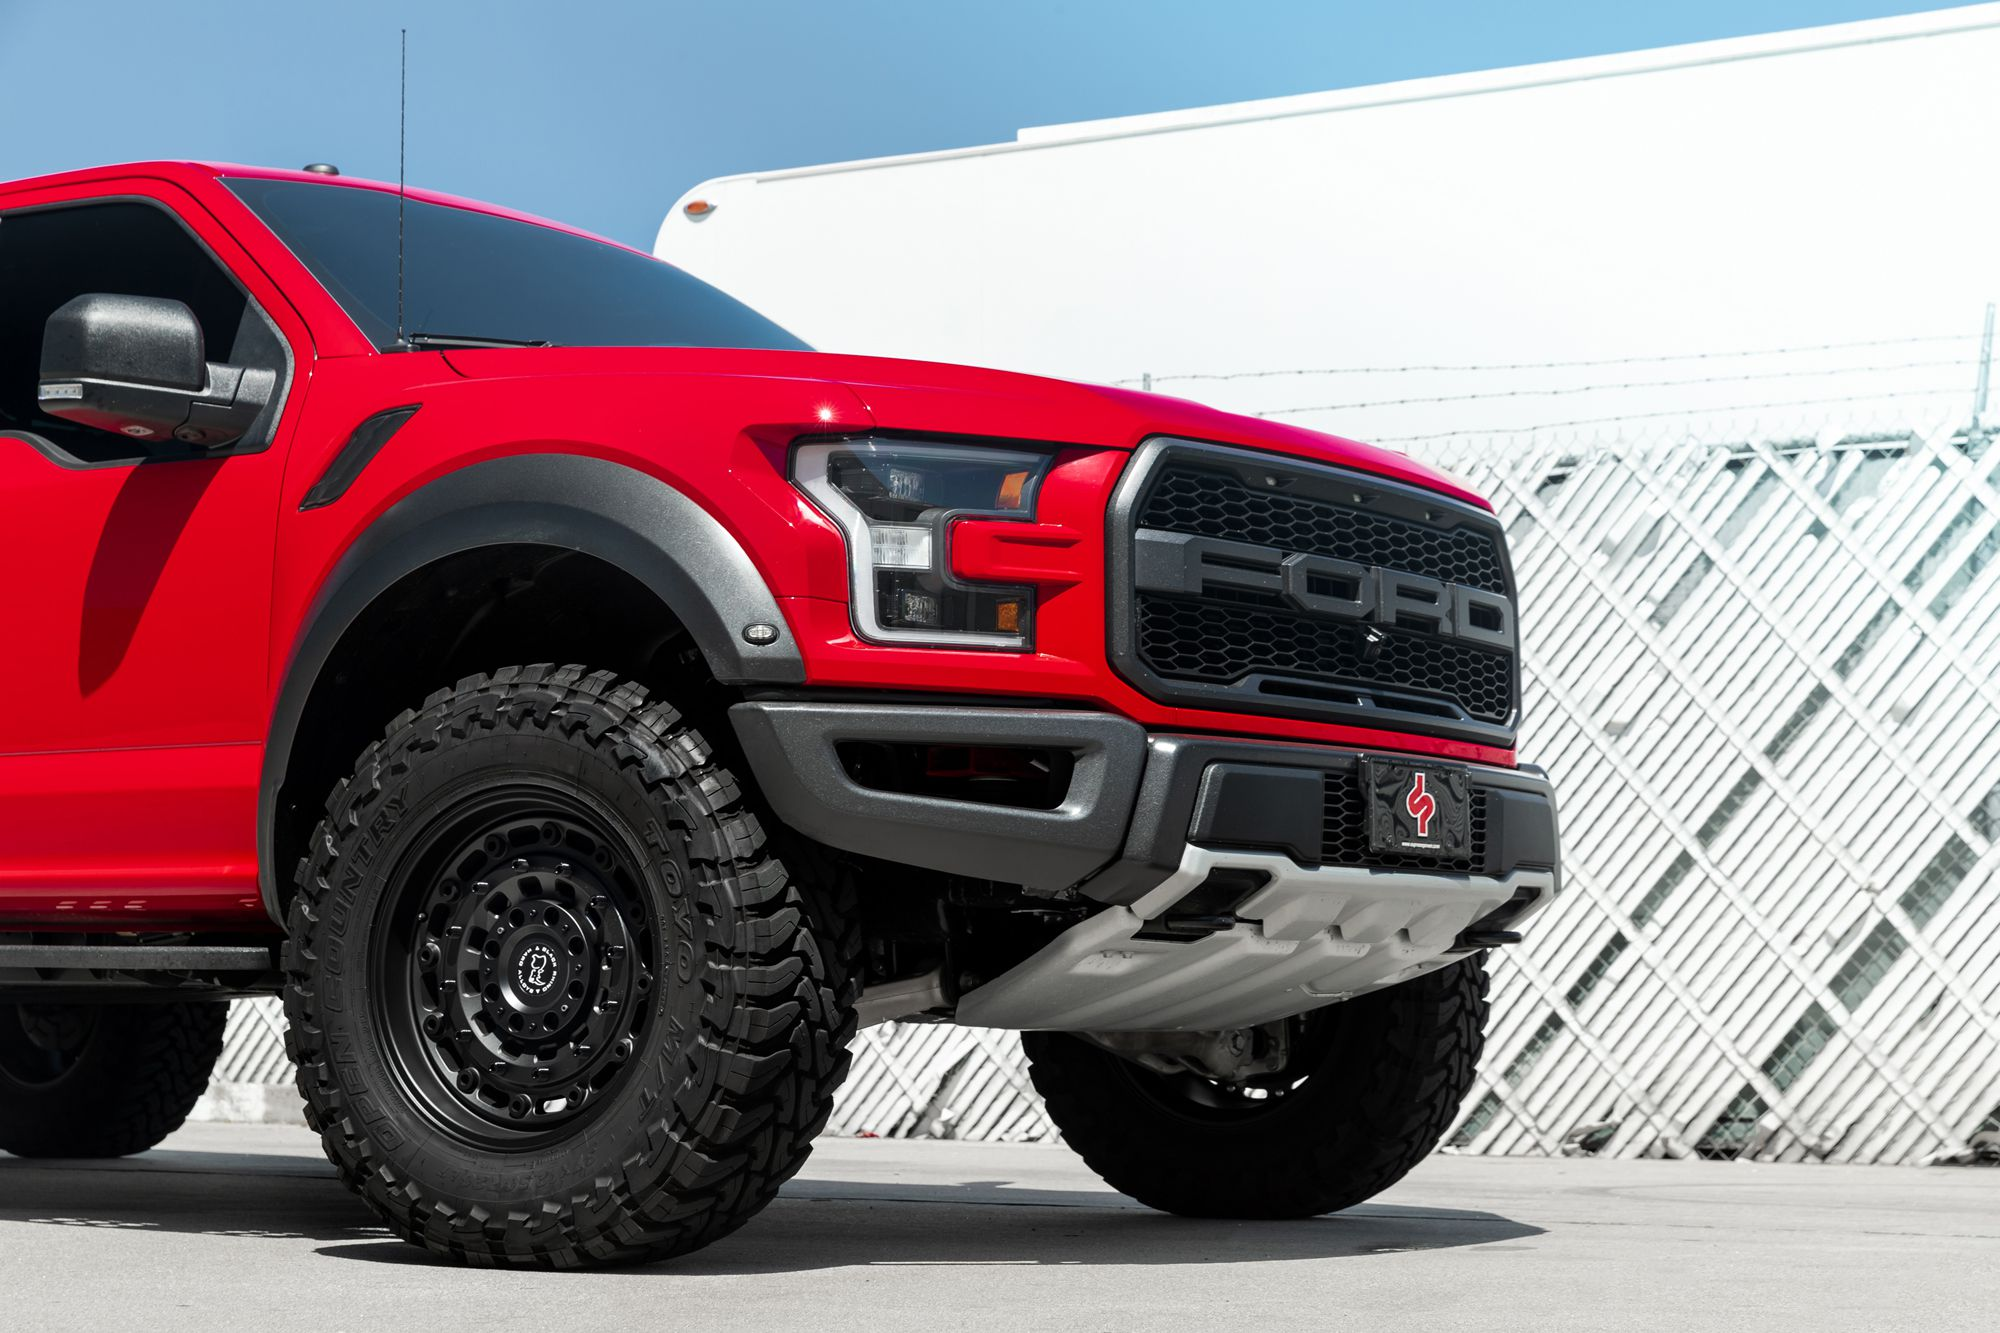 Ford F150 Wheels >> Ford F-150 Raptor on (Supreme Power) Black Rhino Arsenal wheels